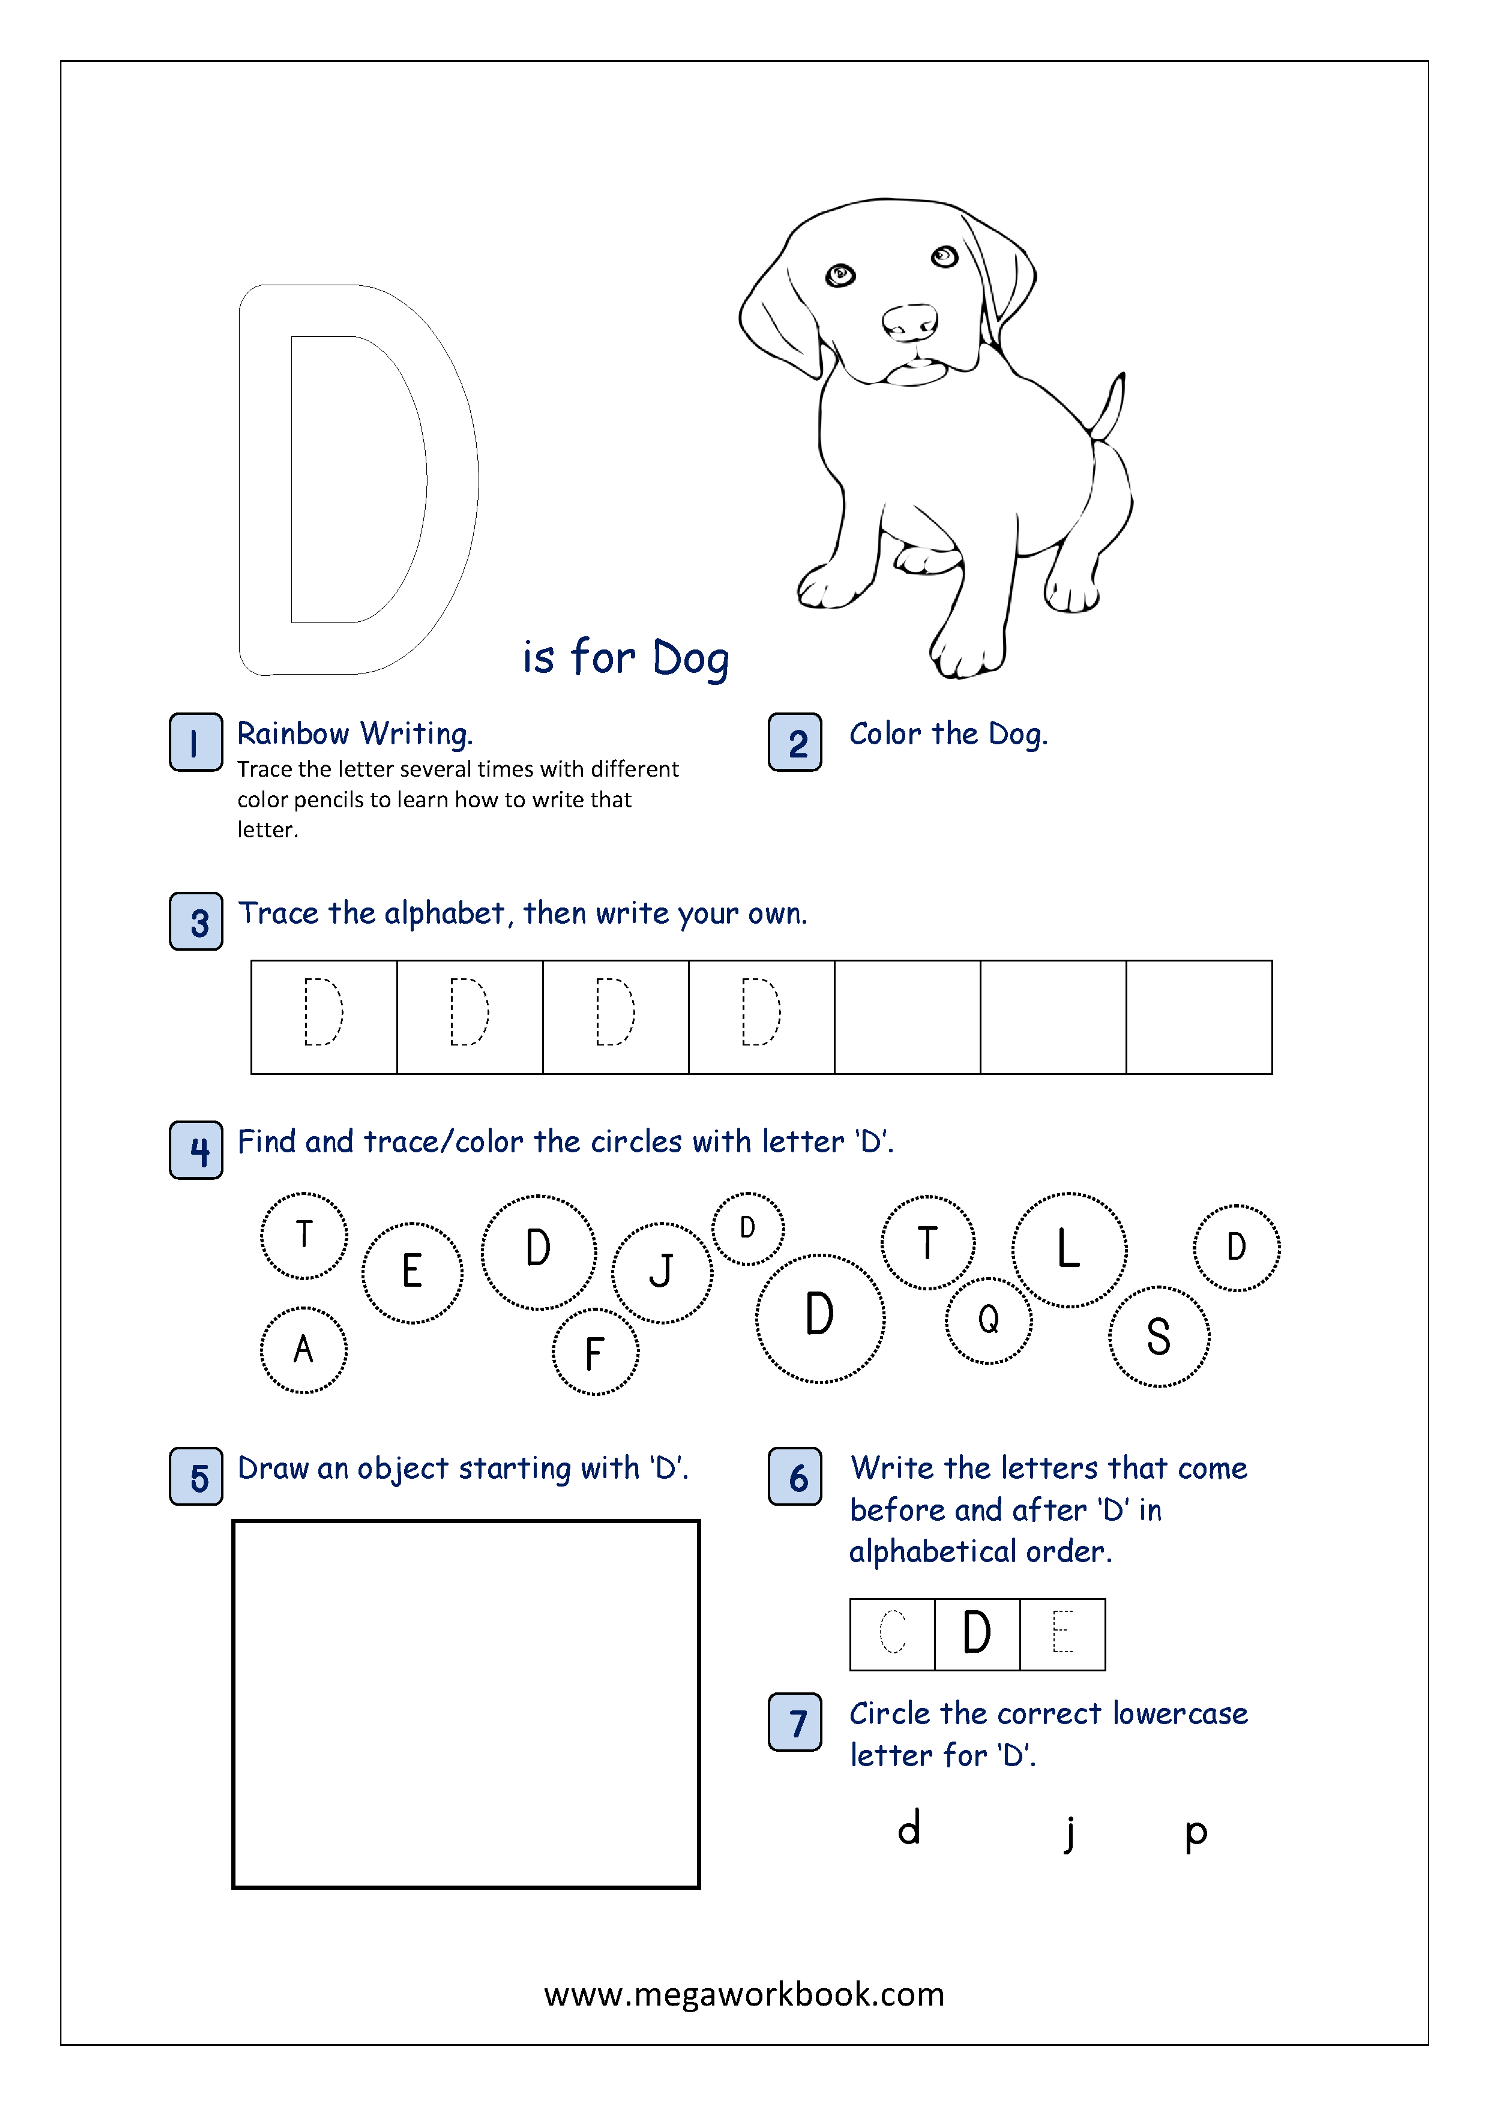 Free Printable Alphabet Recognition Worksheets For Capital within Alphabet Recognition Worksheets For Kindergarten